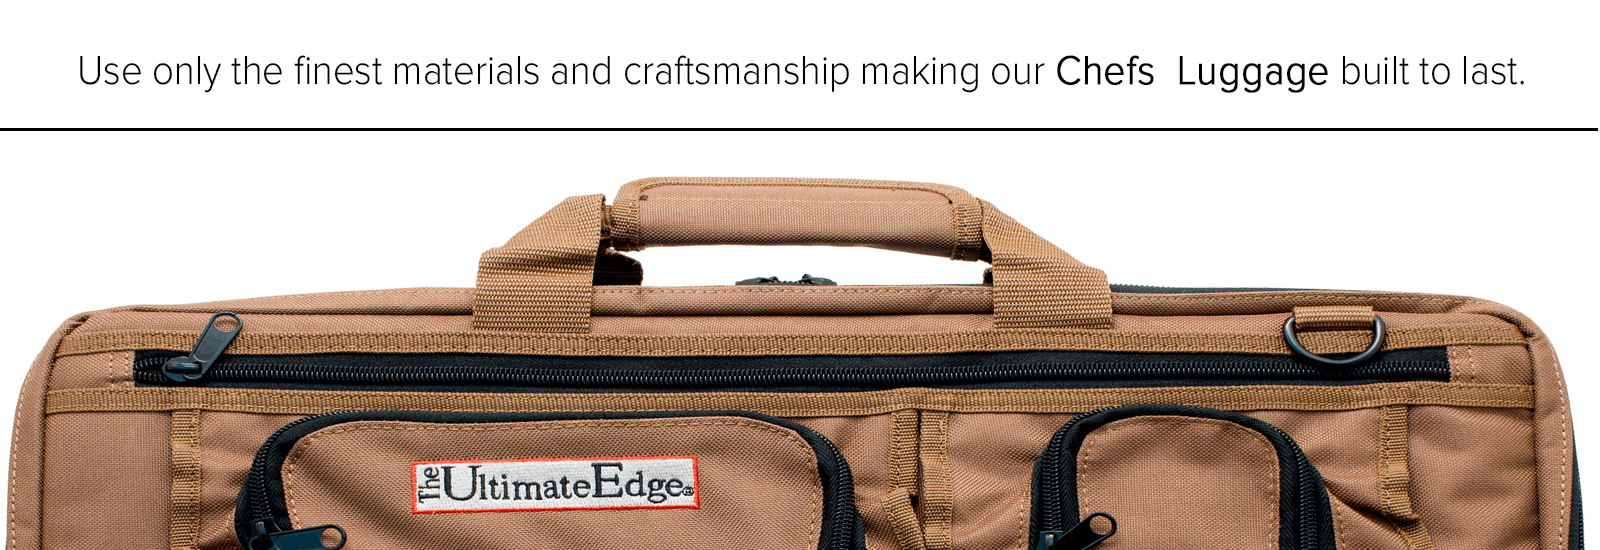 The Ultimate Edge Chef Luggage